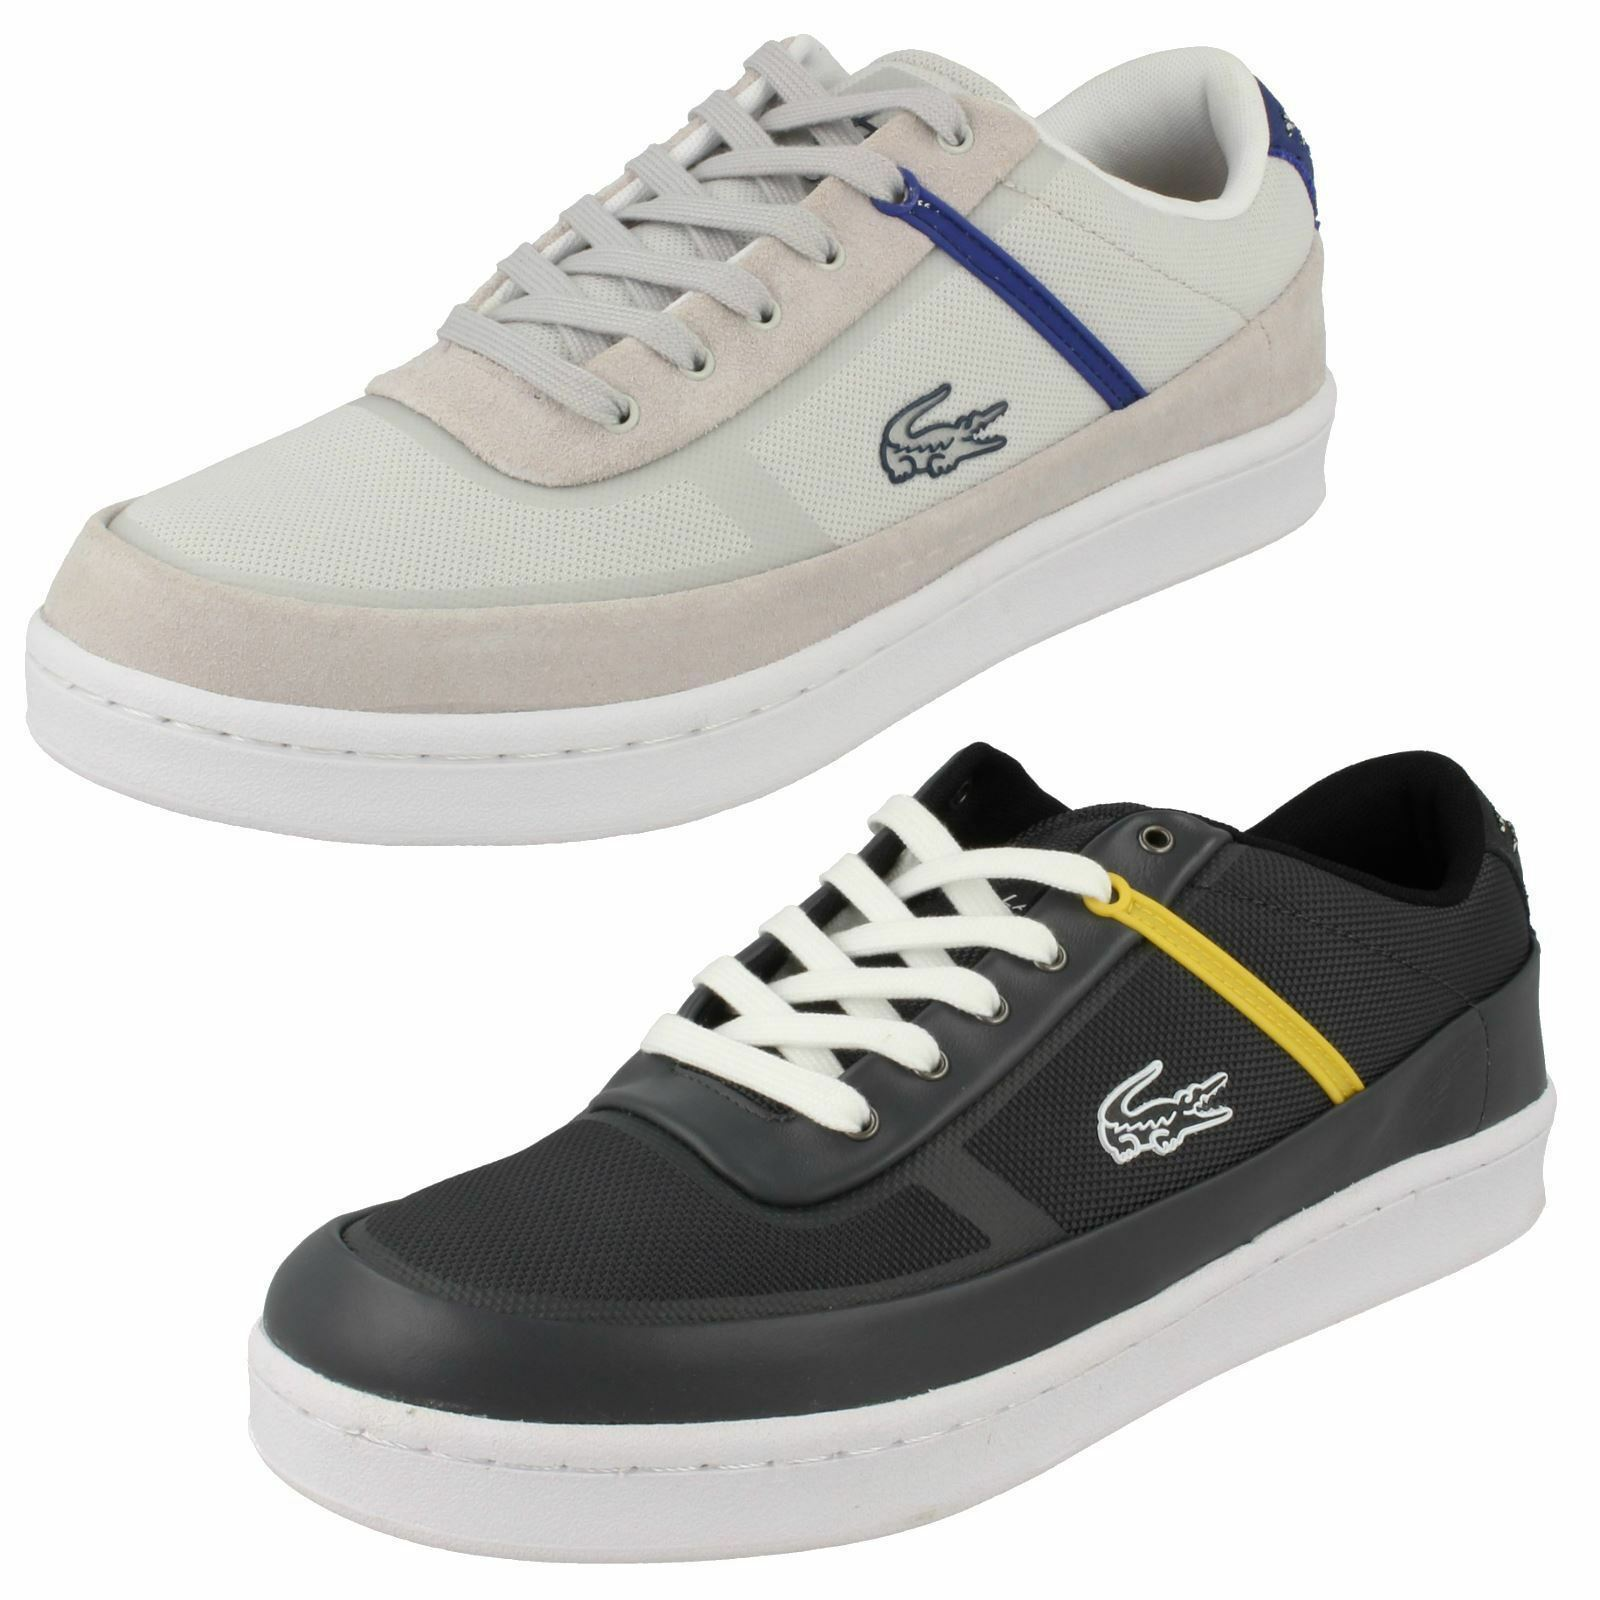 Mens Lacoste Lace Up Trainers UK Sizes 6-11 Courtline